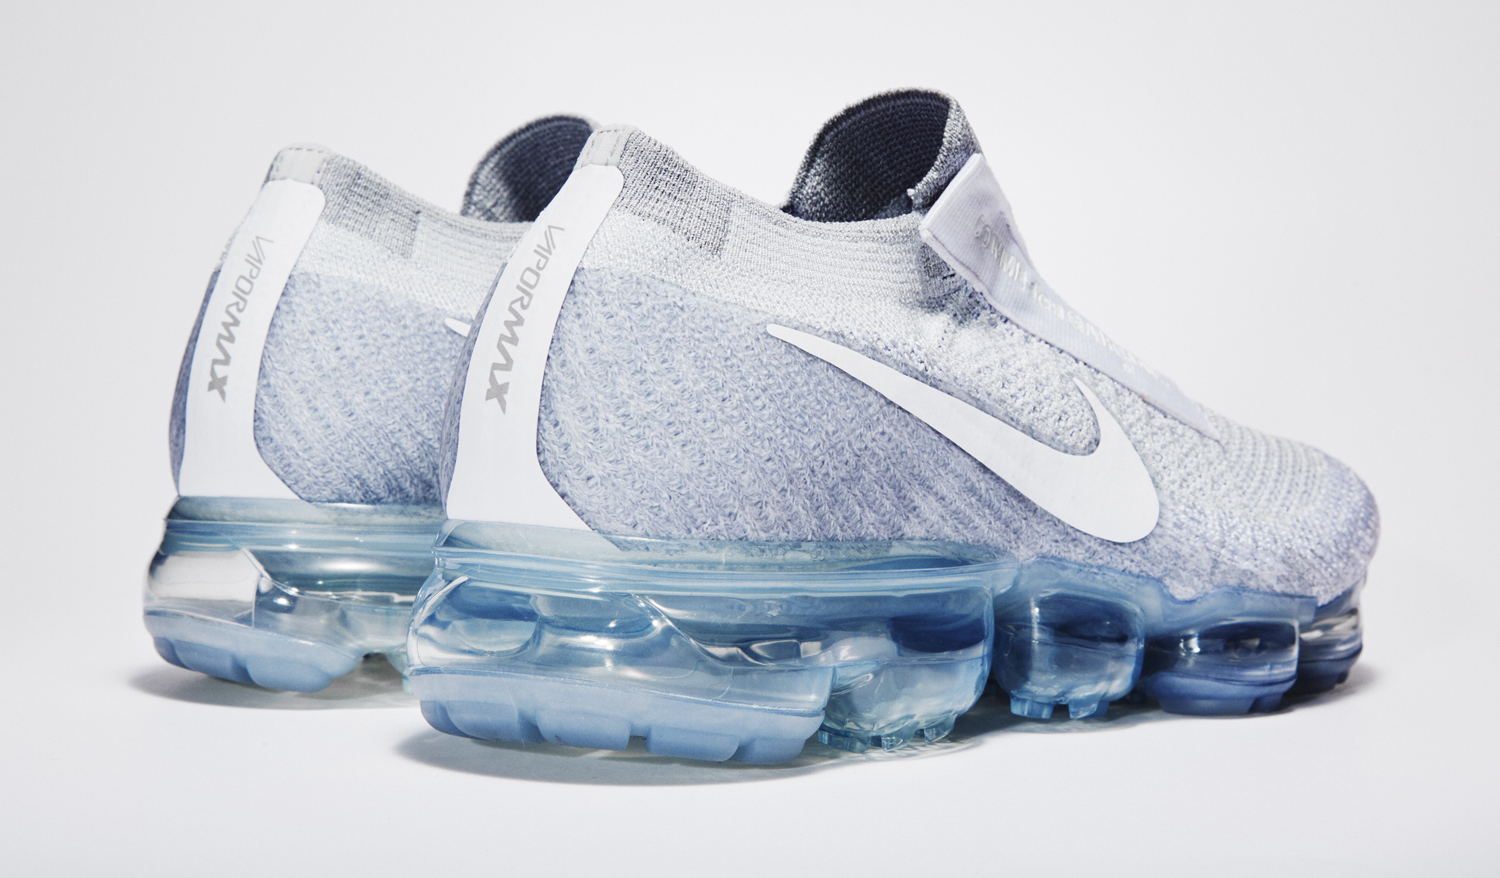 Nike Air Vapormax All White